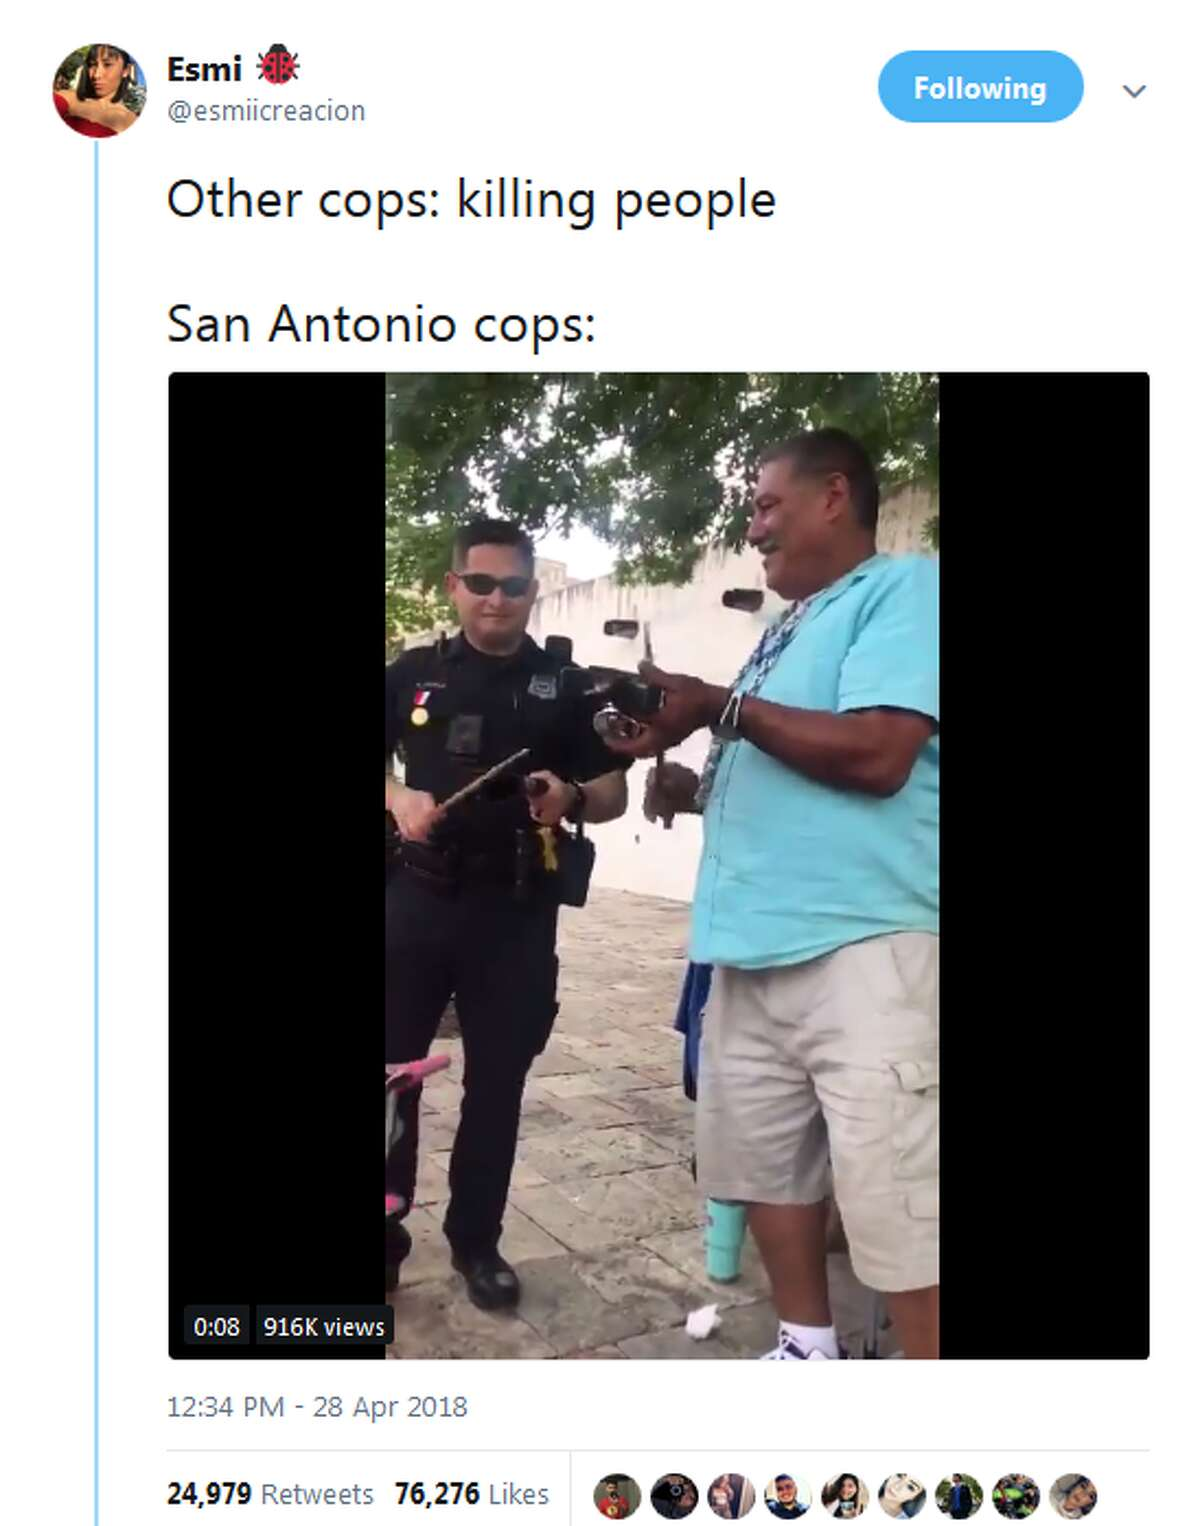 When San Antonio needed more cowbell This cop delivered. See the video here.